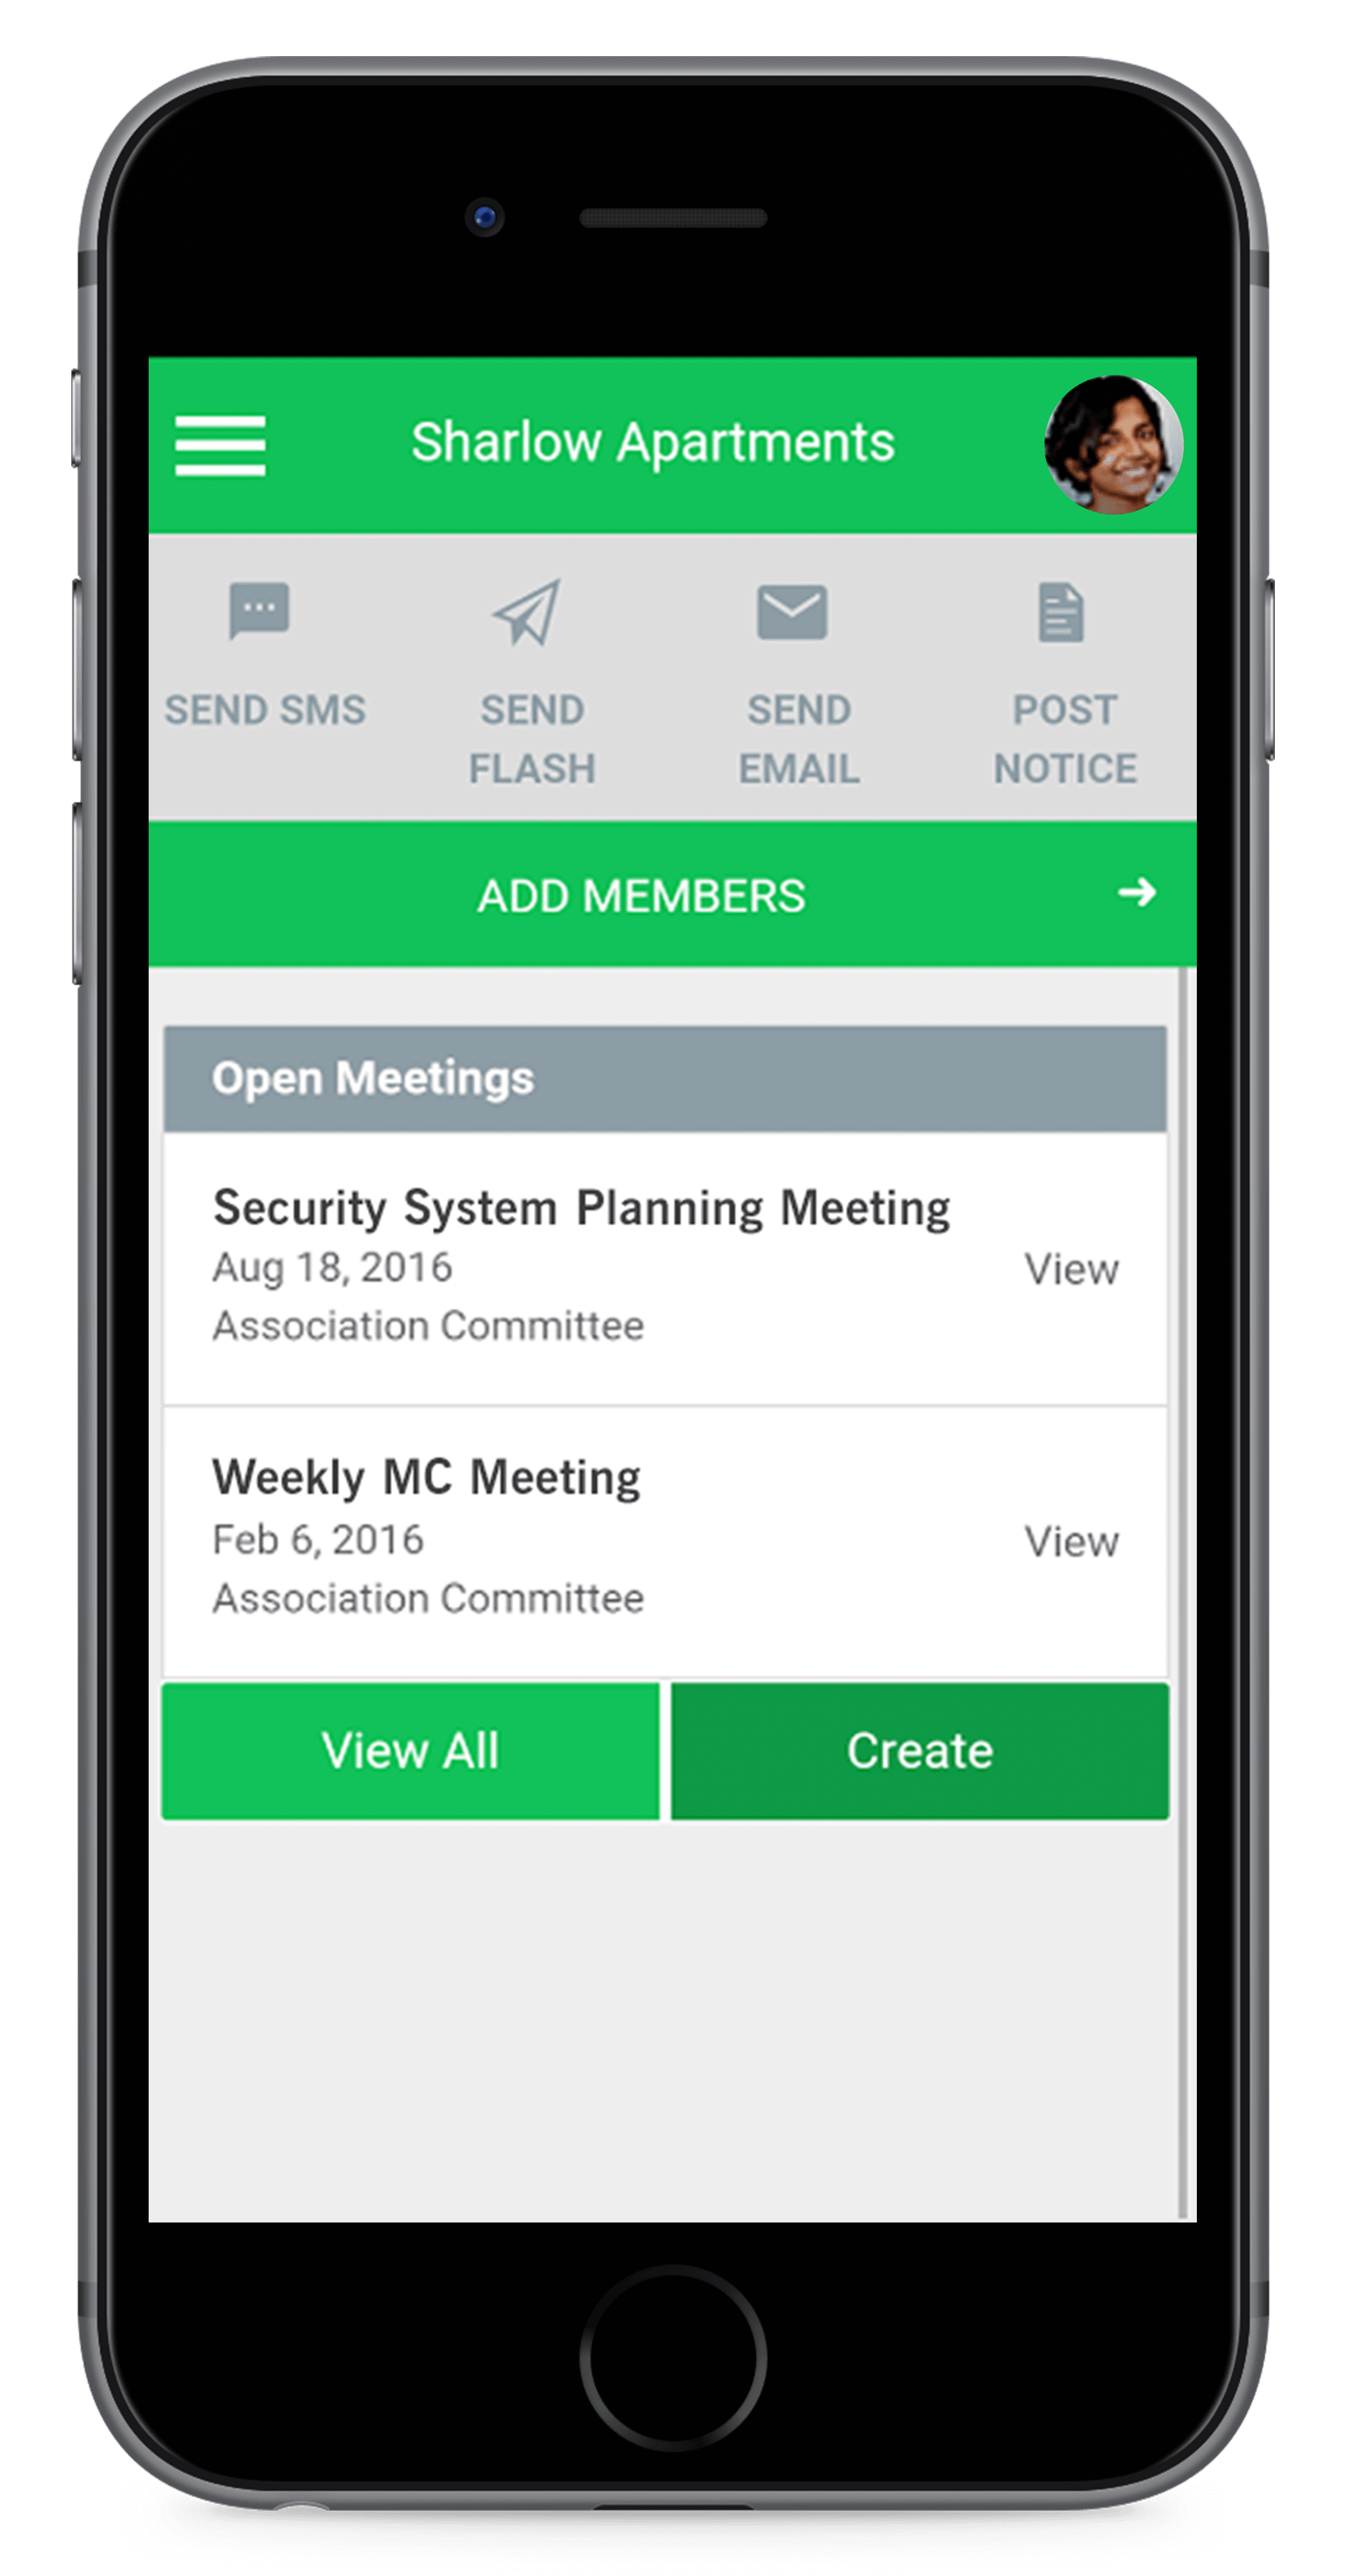 facility management app